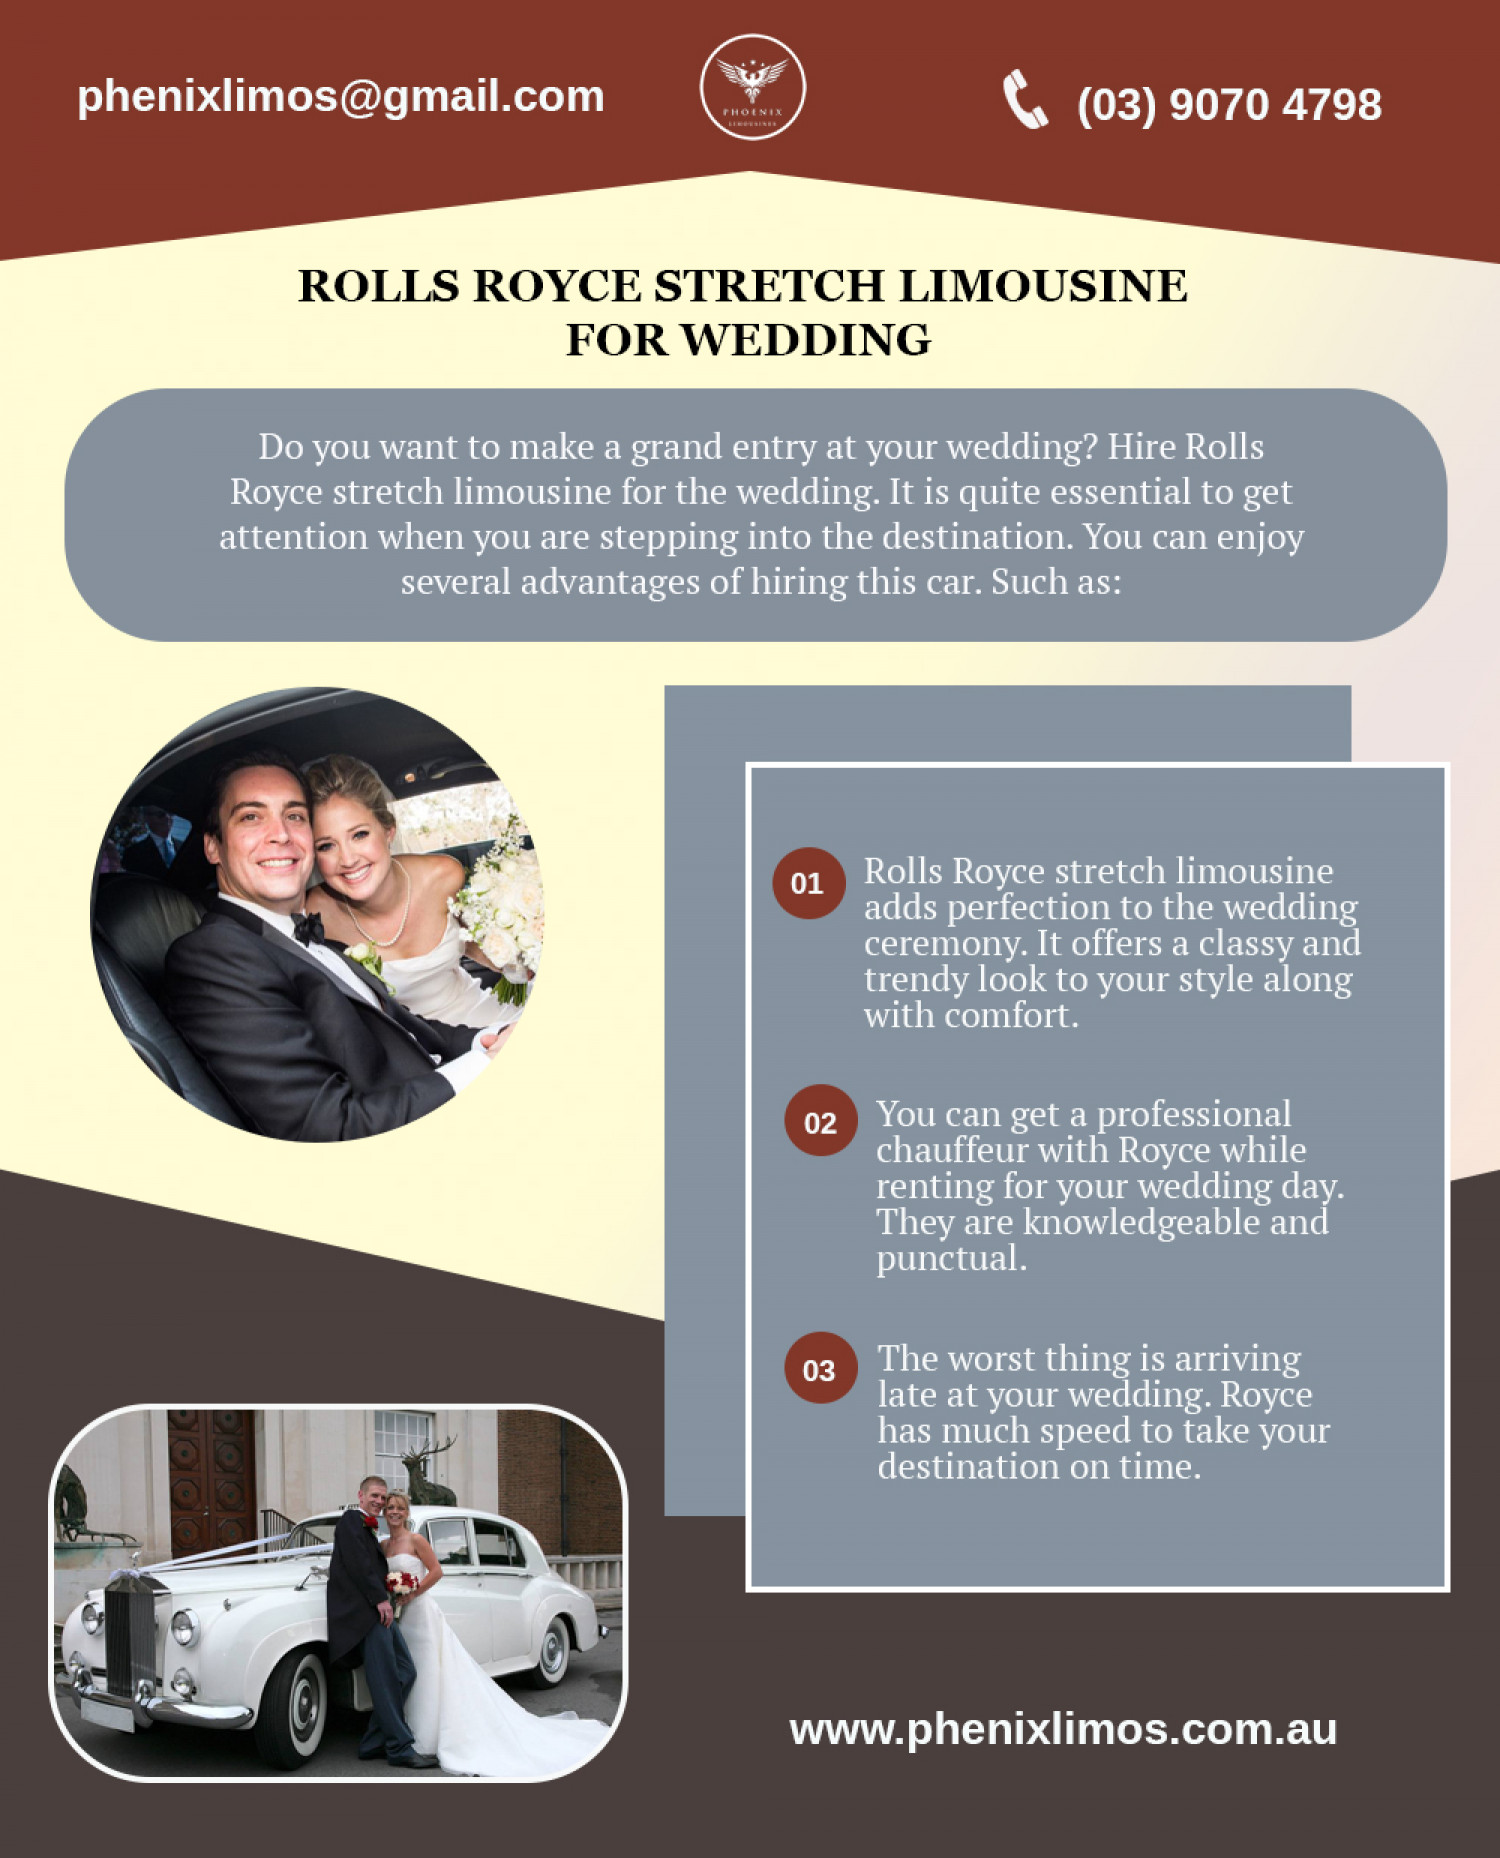 Rolls Royce Stretch Limousine for Wedding Infographic